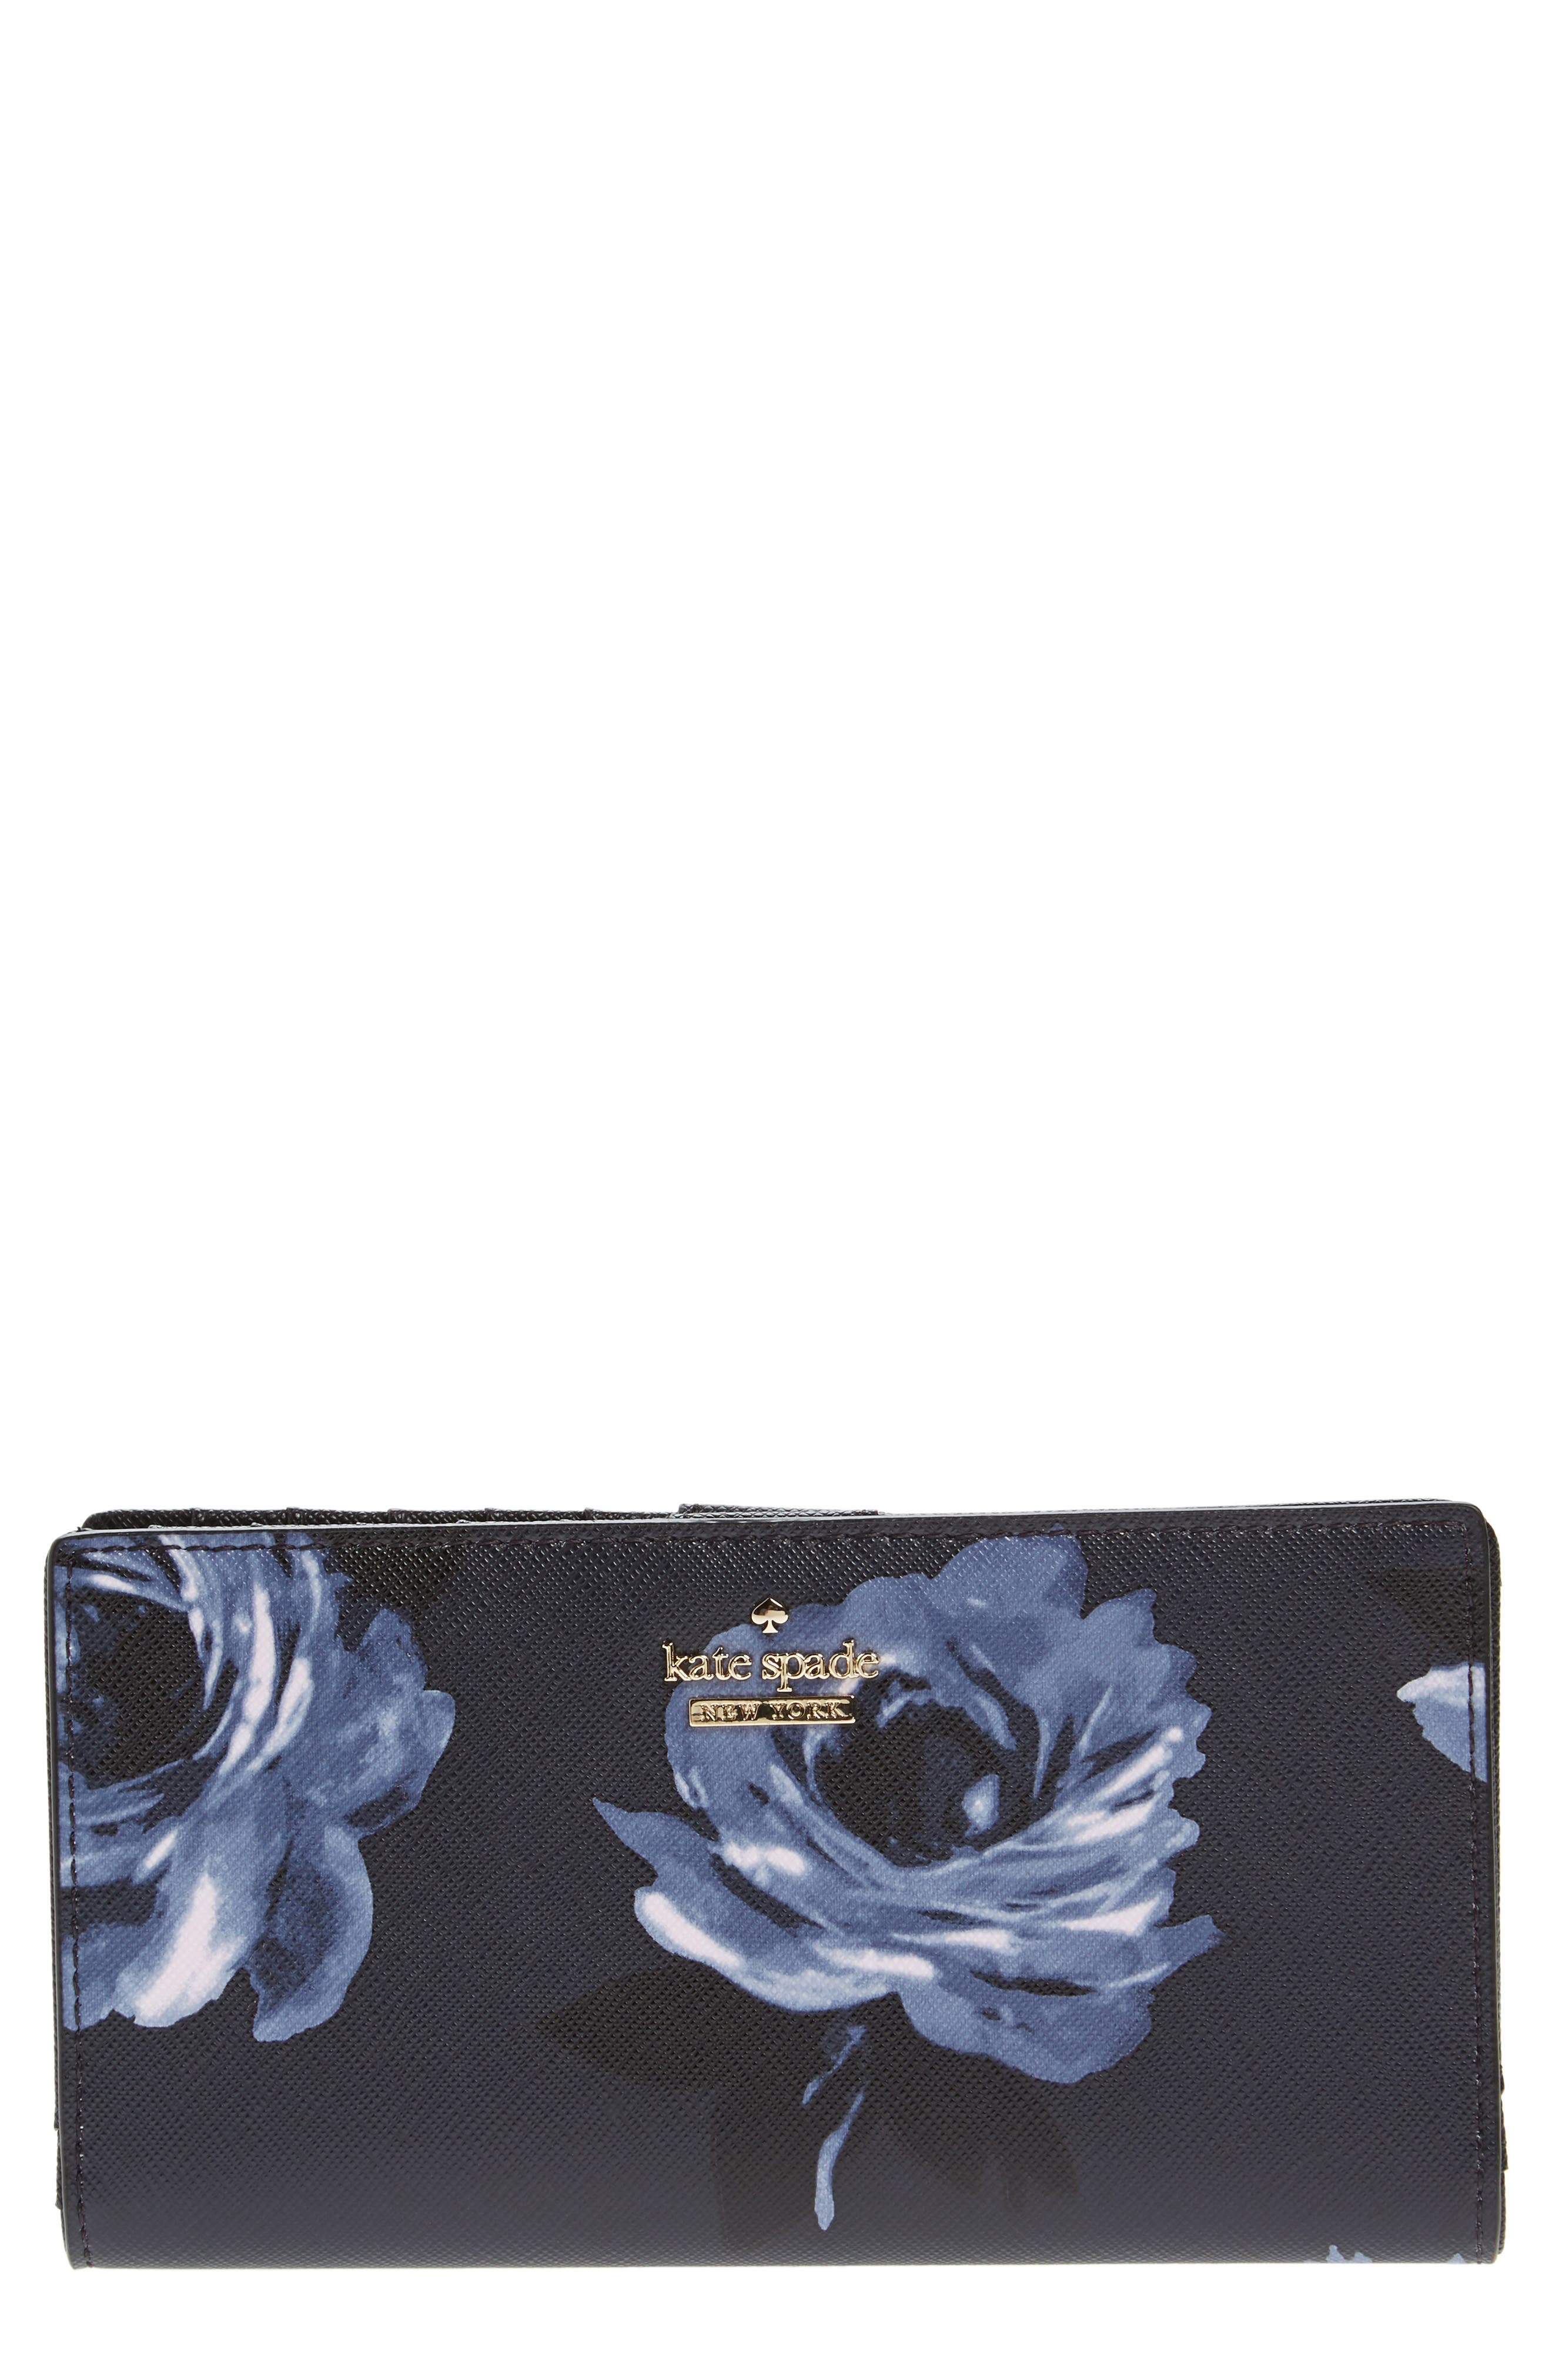 kate spade new york cameron street - stacy leather wallet